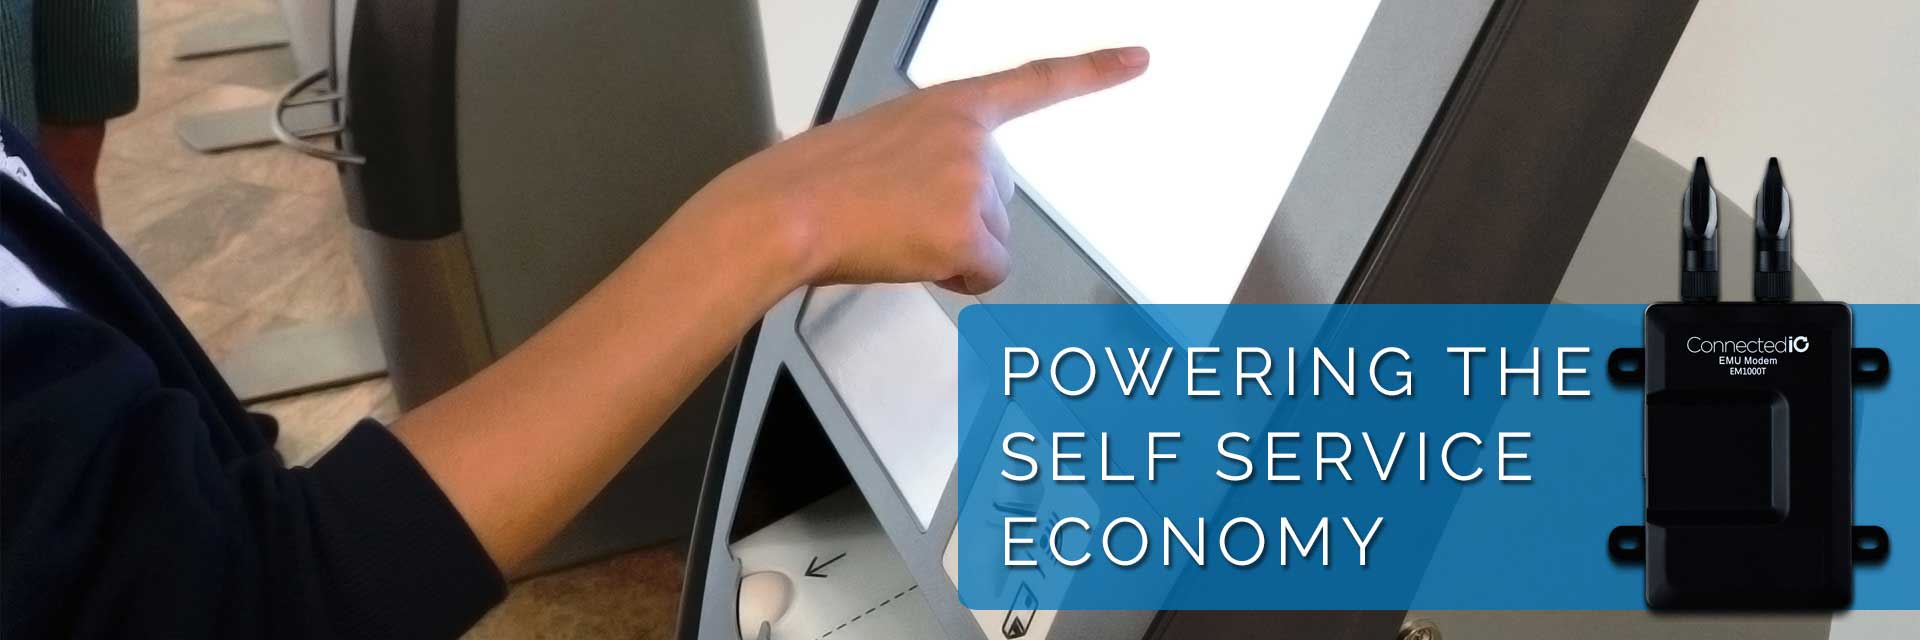 Powering the self service economy